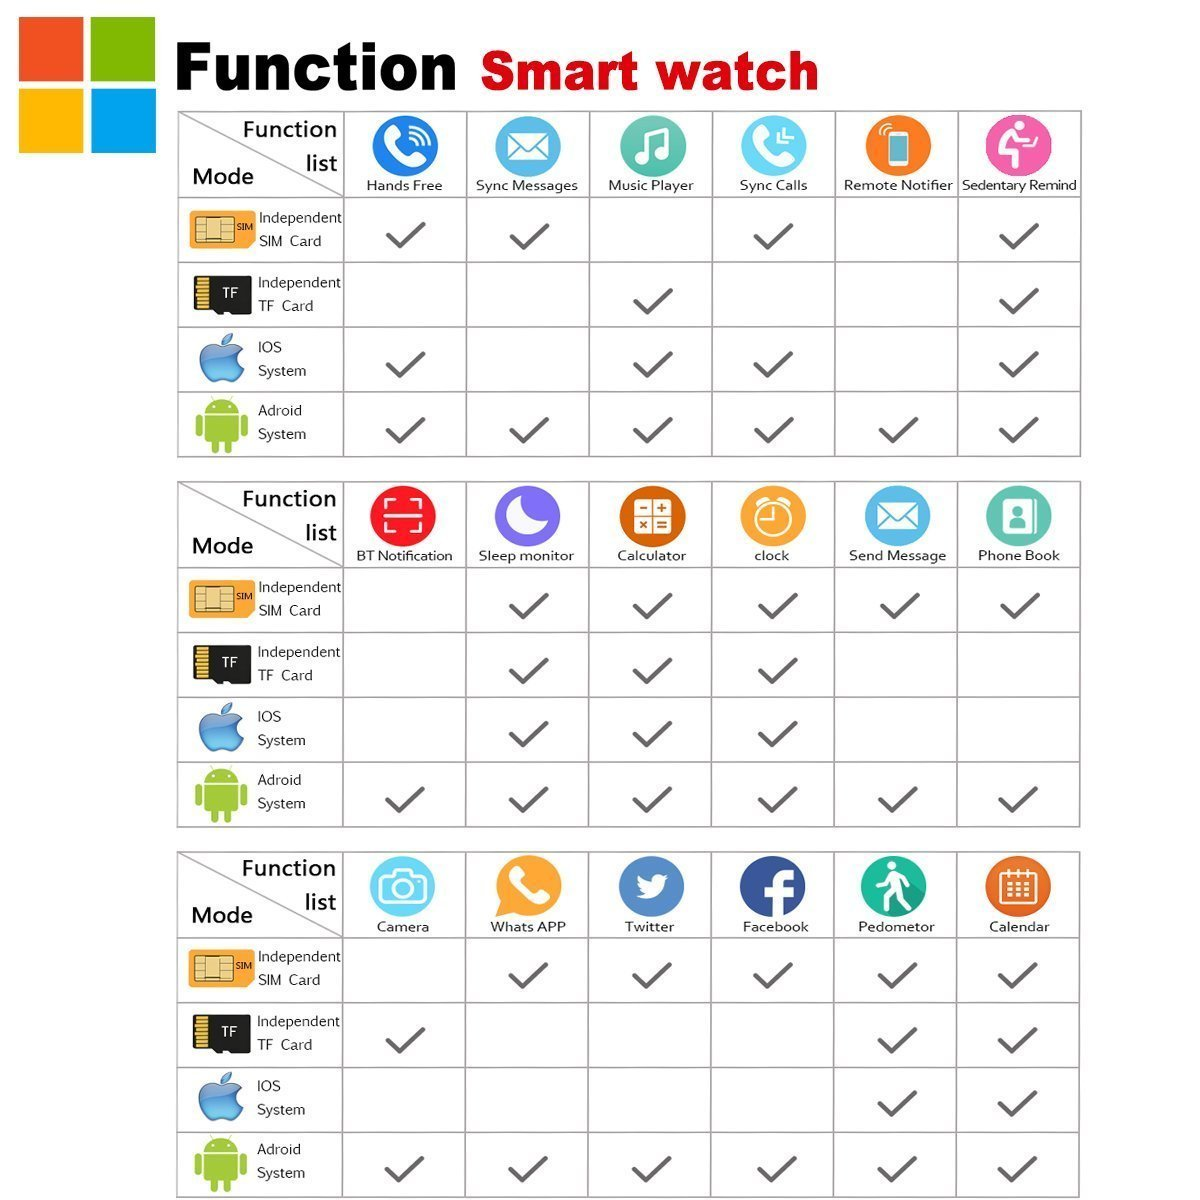 Bluetooth Smart Watch Touchscreen with Camera,Unlocked Watch Cell Phone with Sim Card Slot,Smart Wrist Watch,Waterproof Smartwatch Phone for Android Samsung IOS Iphone 7 6S Men Women Kids by Luckymore (Image #7)